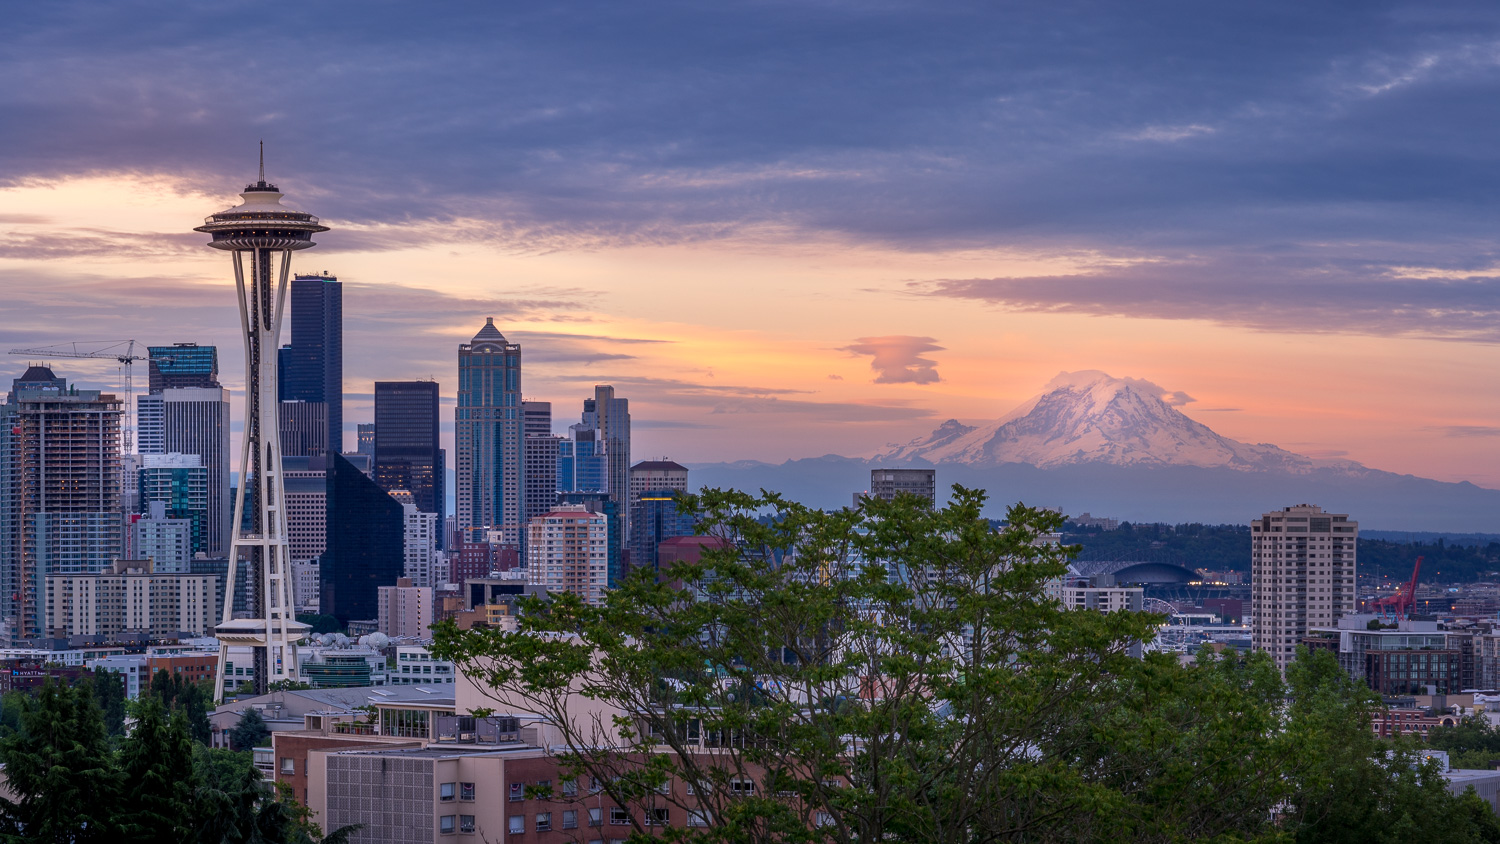 Seattle, WA, USA, June 2015